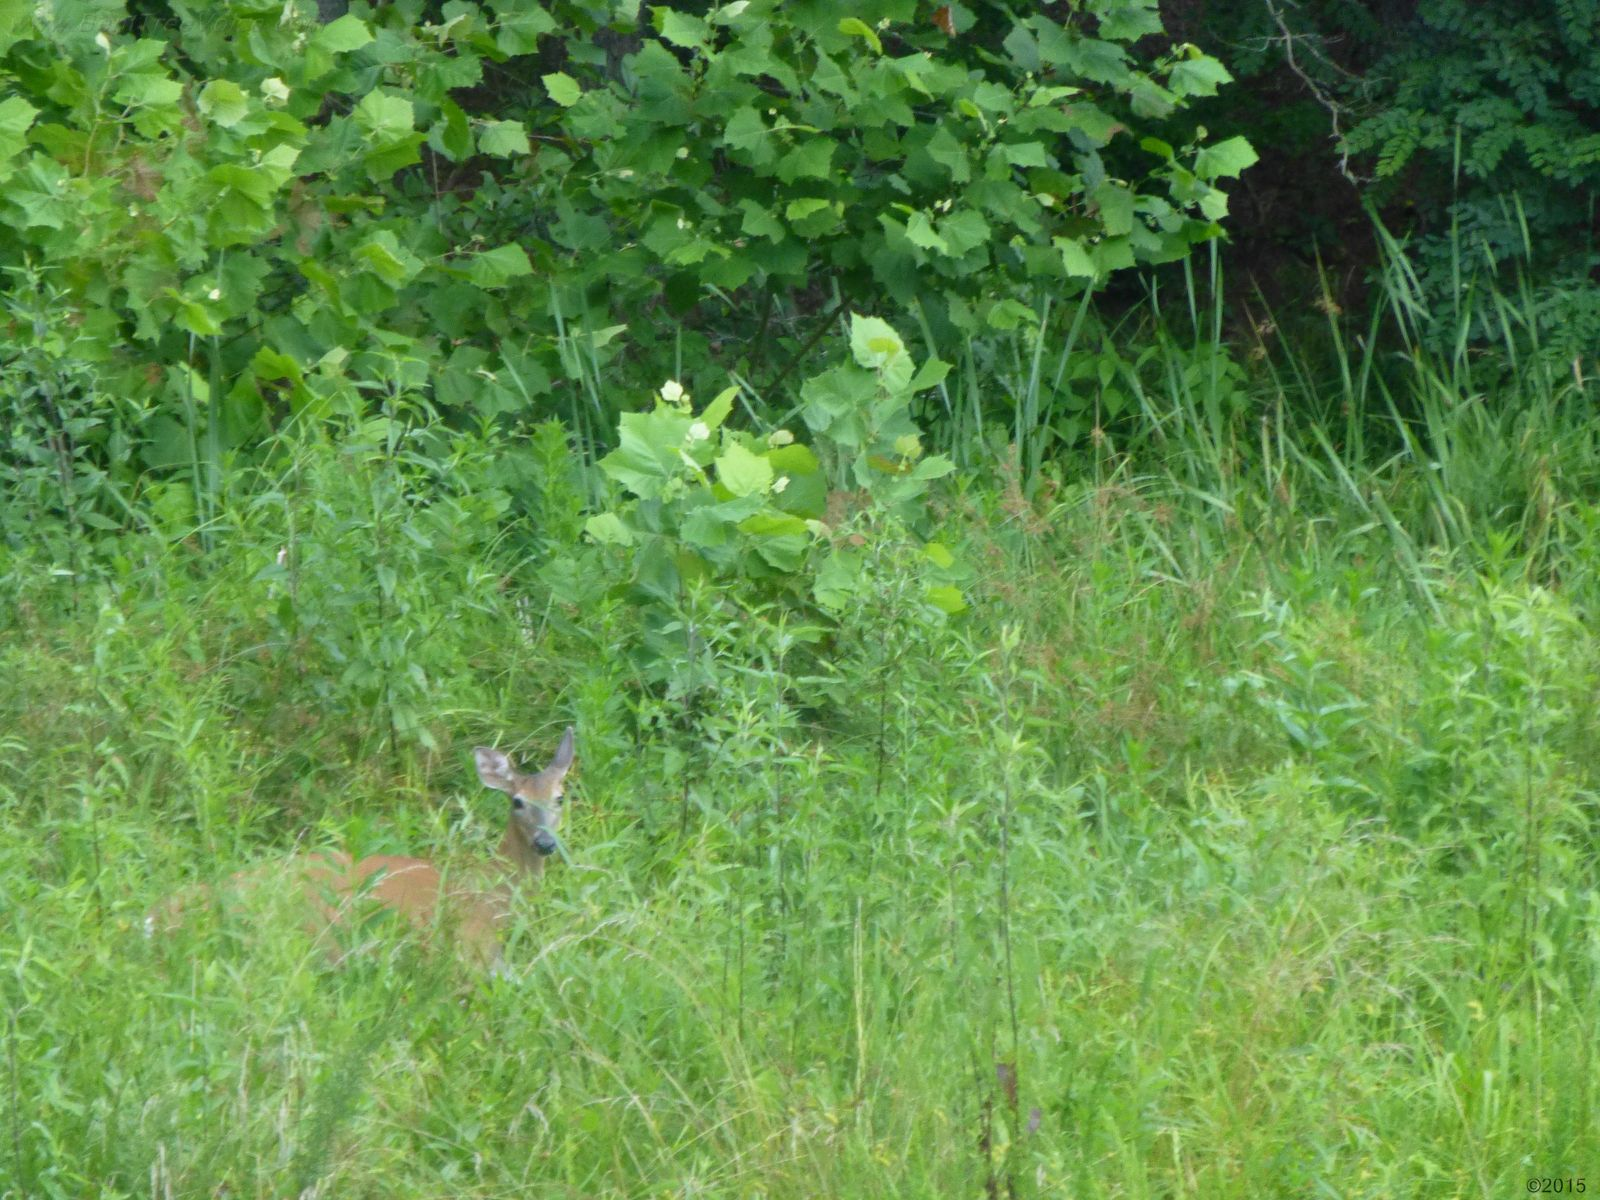 July 4, 2015 - doe appear